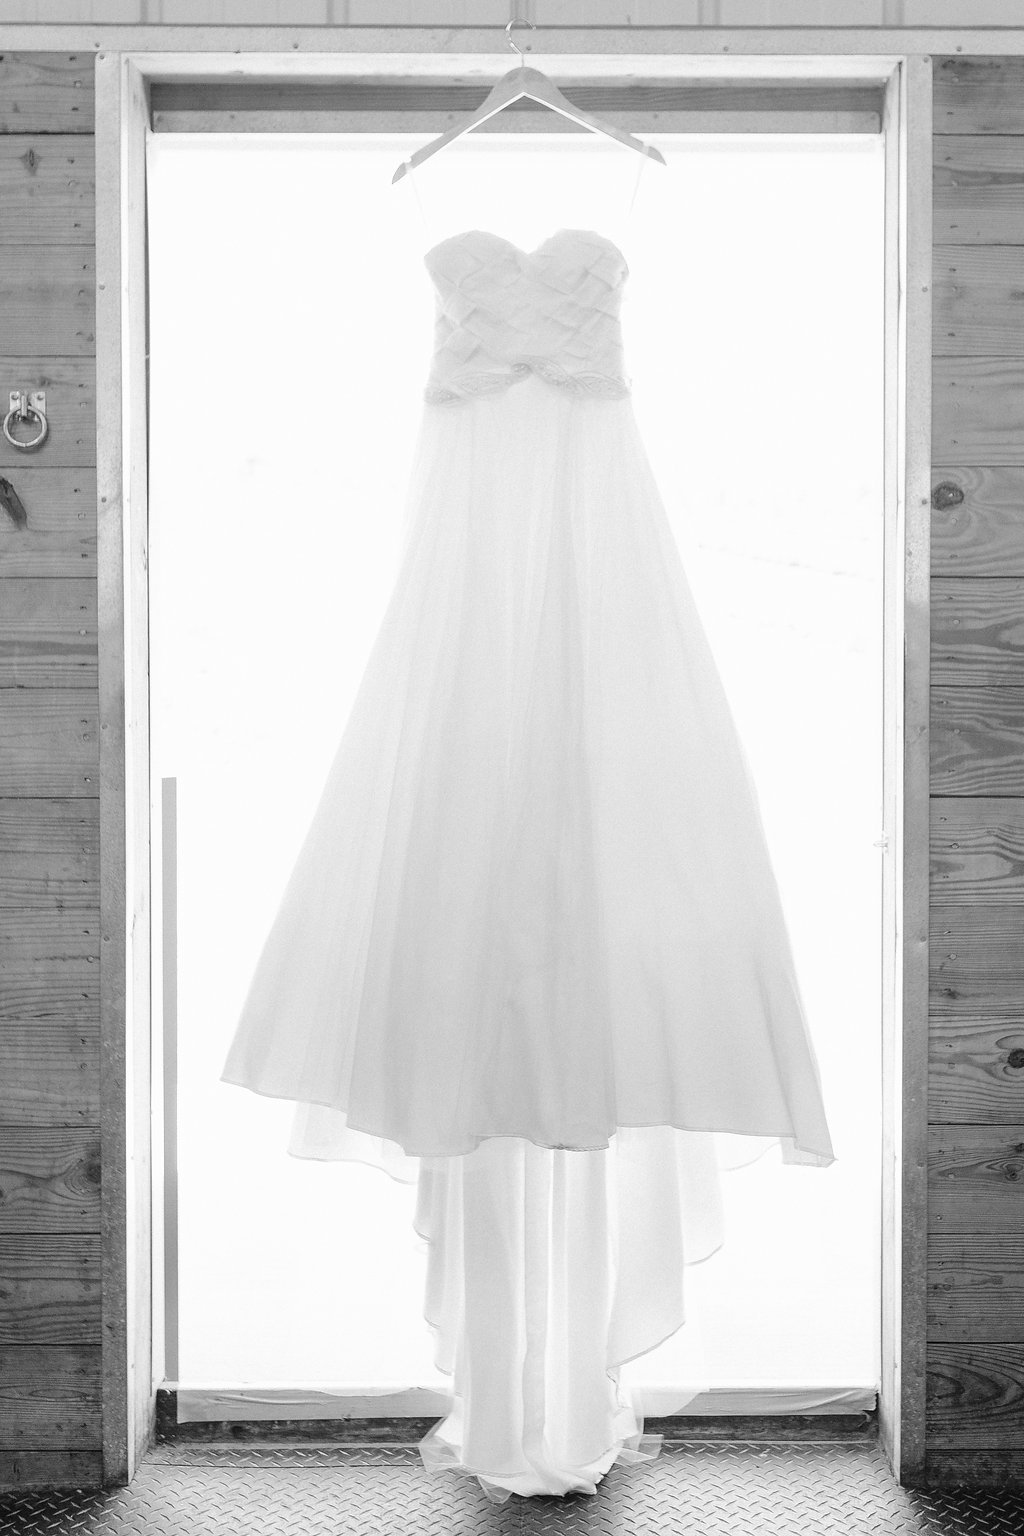 Janay A Eco Bridal wedding gown black and white photo